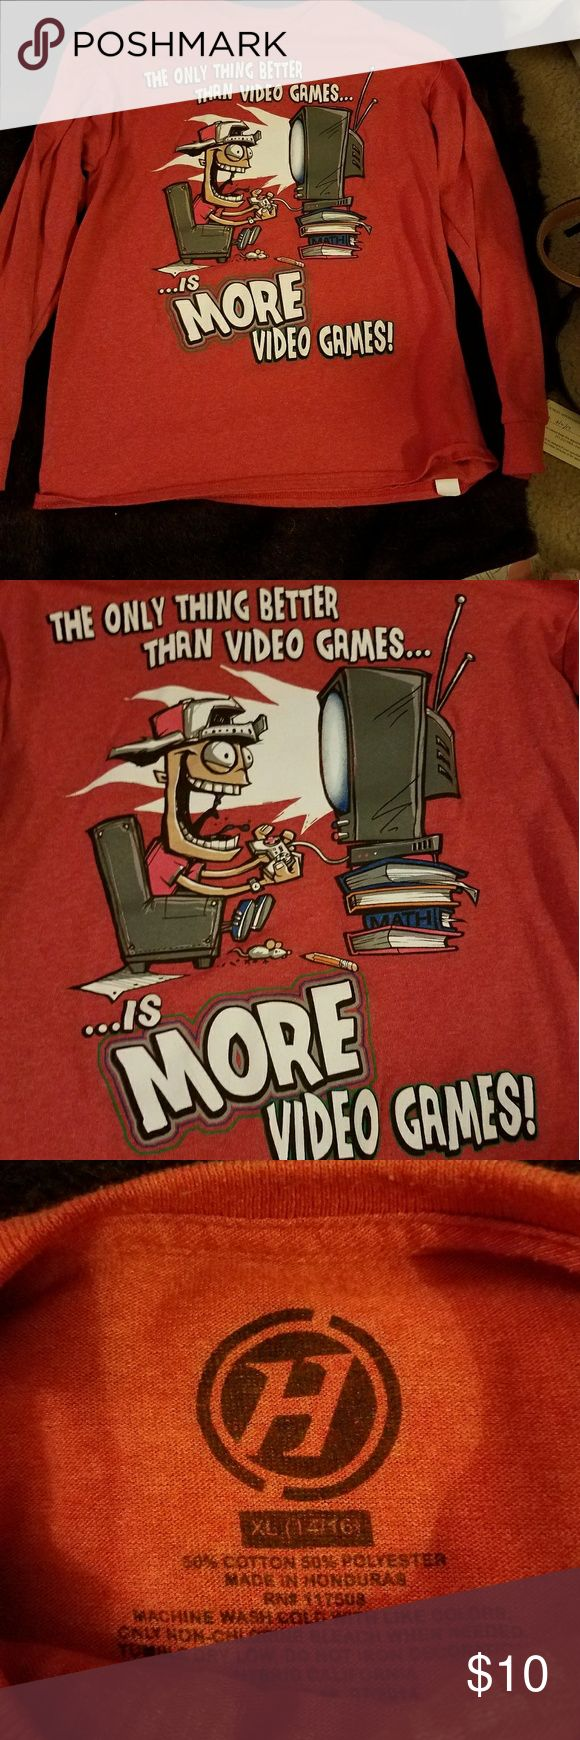 Boys Video Gamer Obsession Long Sleeve tshirt XL The only thing better then vido5ganes is MORE video game! Orange Long Sleeve Cuffed. Size XL boys. Shirts & Tops Tees - Long Sleeve